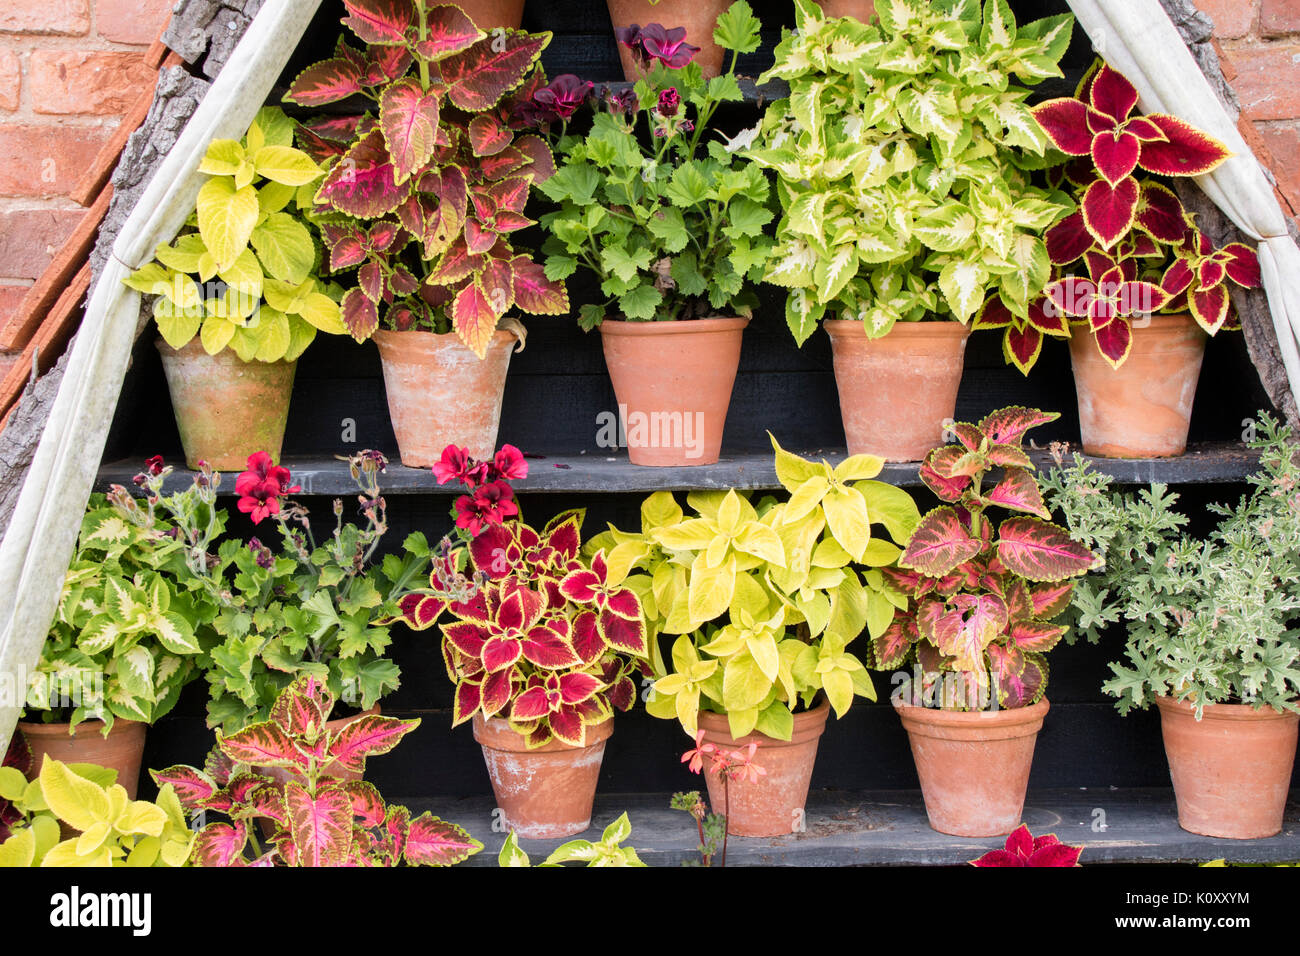 Coleus Plants On Decorative Outdoor Shelving Stock Photo